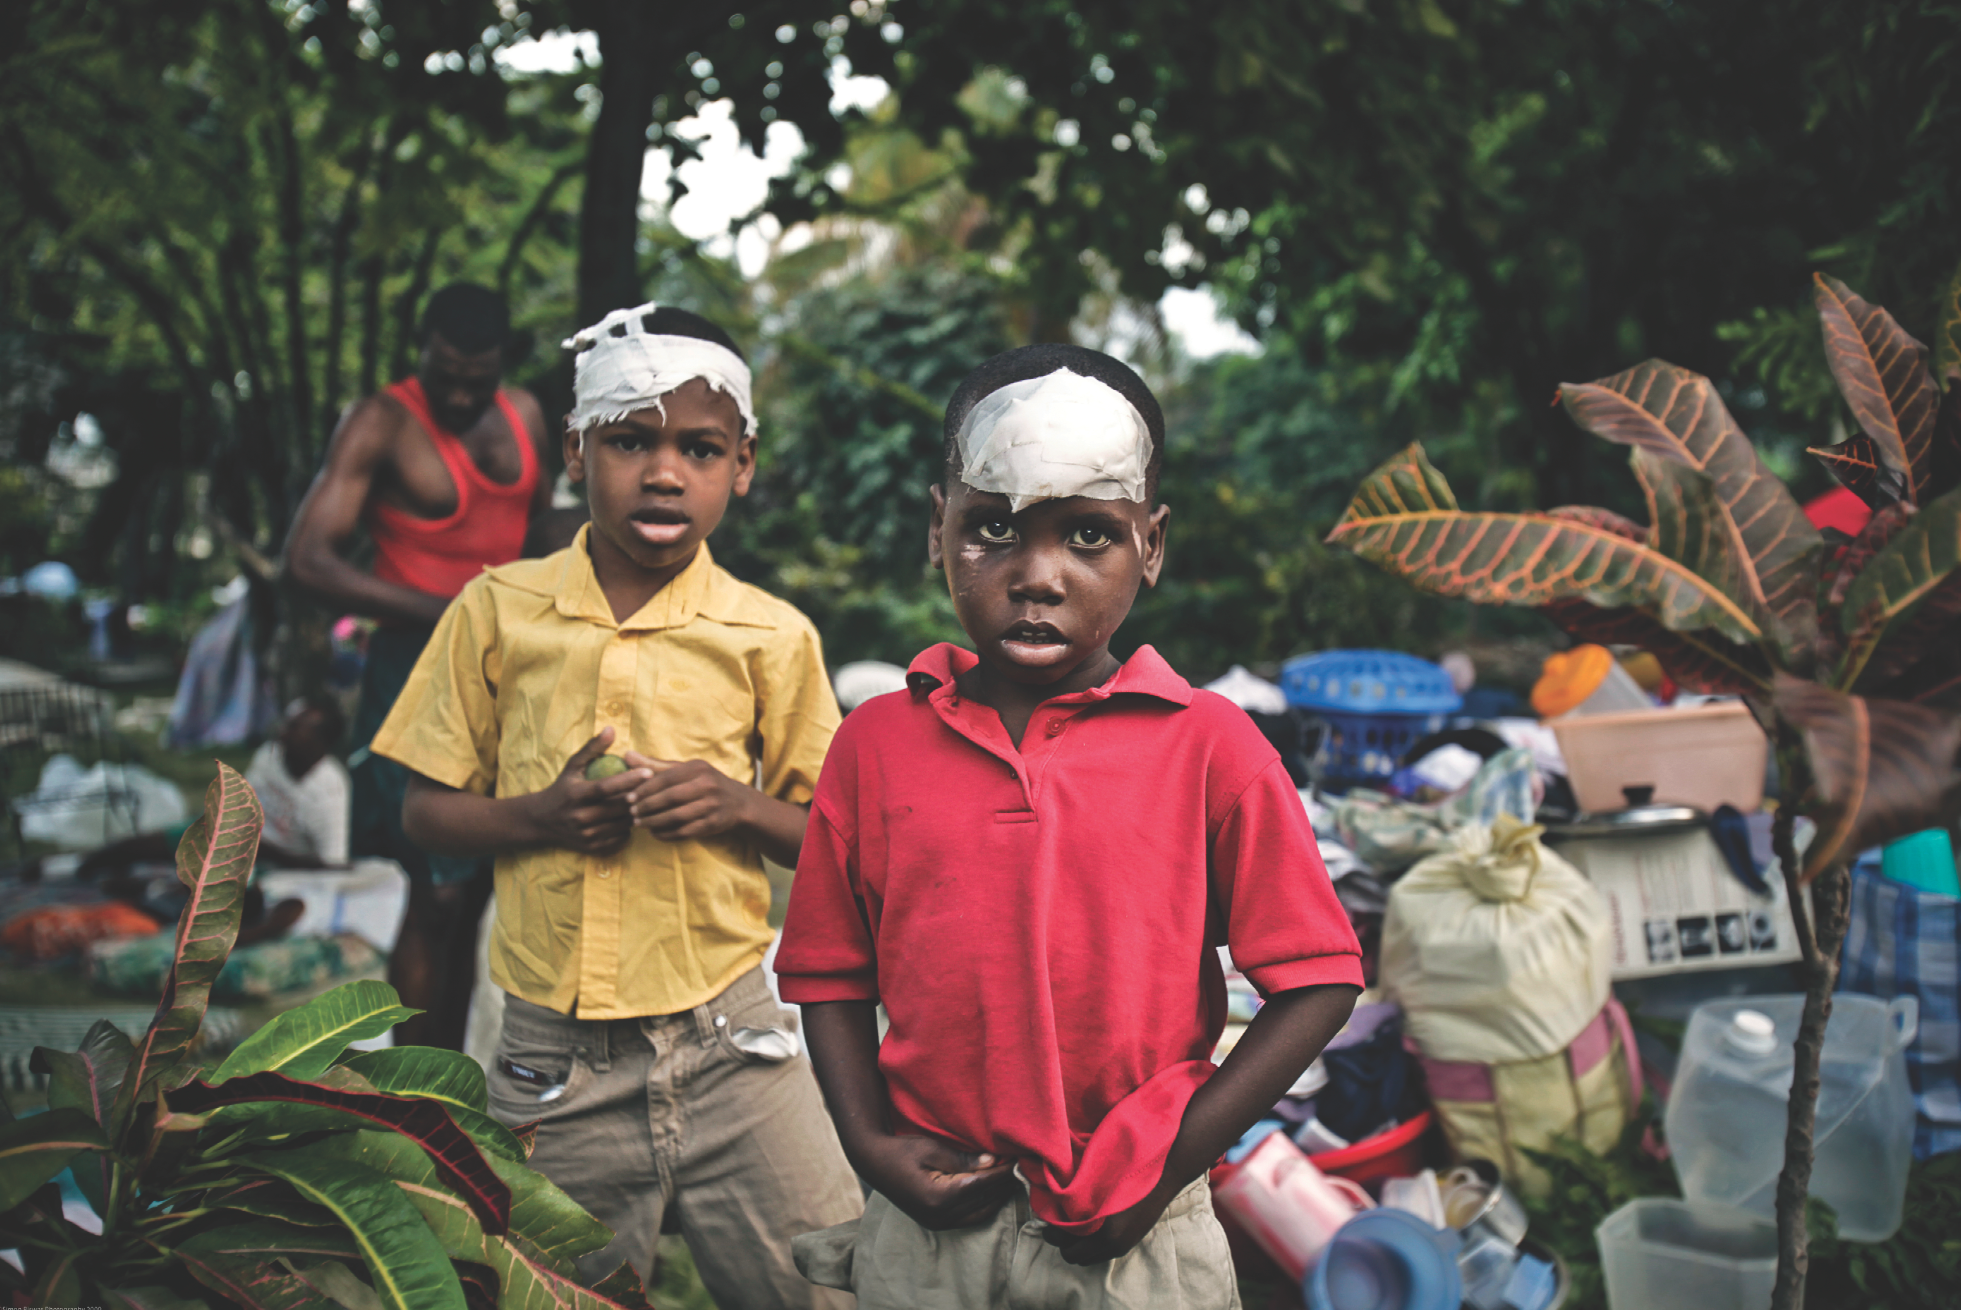 simon-biswas, six-days-in-haiti, arts, photography